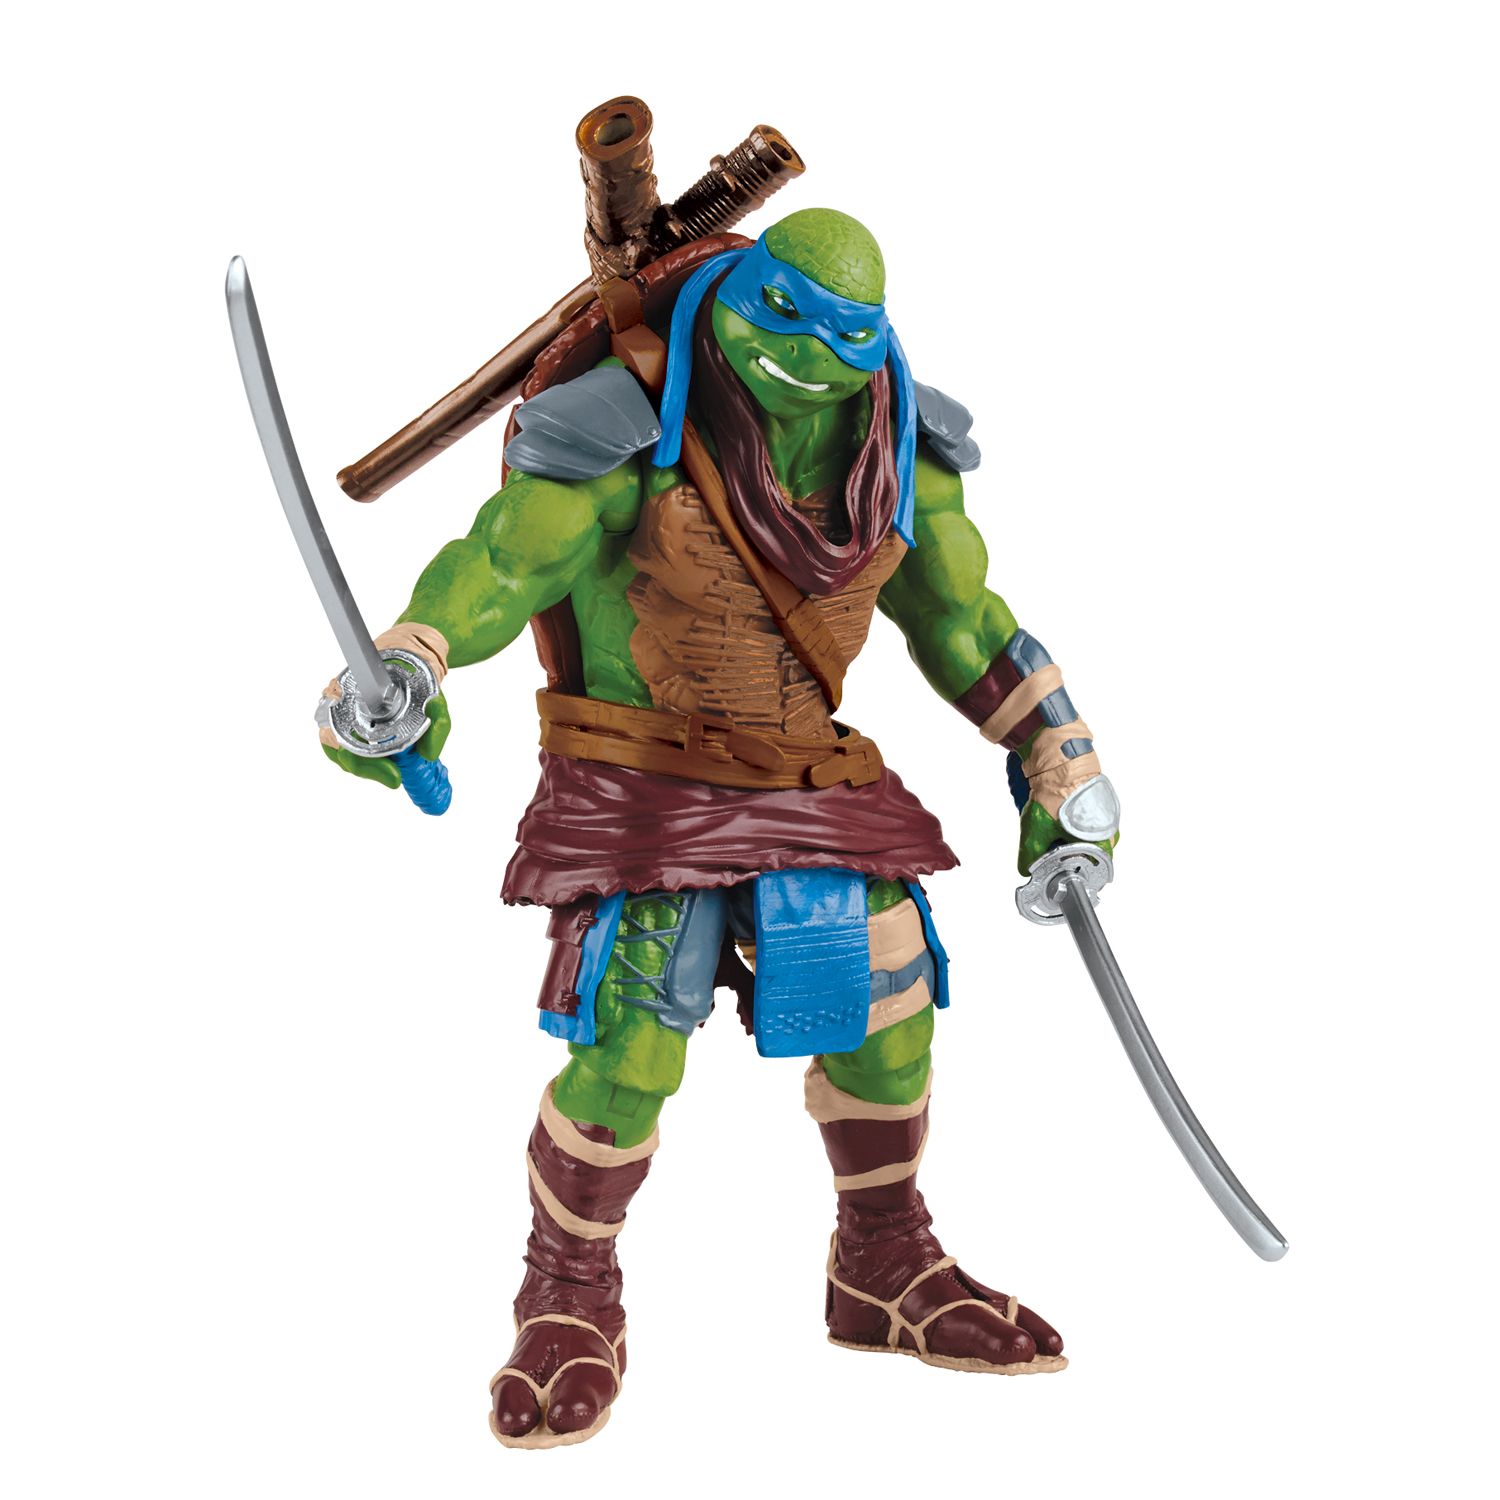 Teenage Mutant Ninja Toys : Teenage mutant ninja turtles emerge from the shadows onto